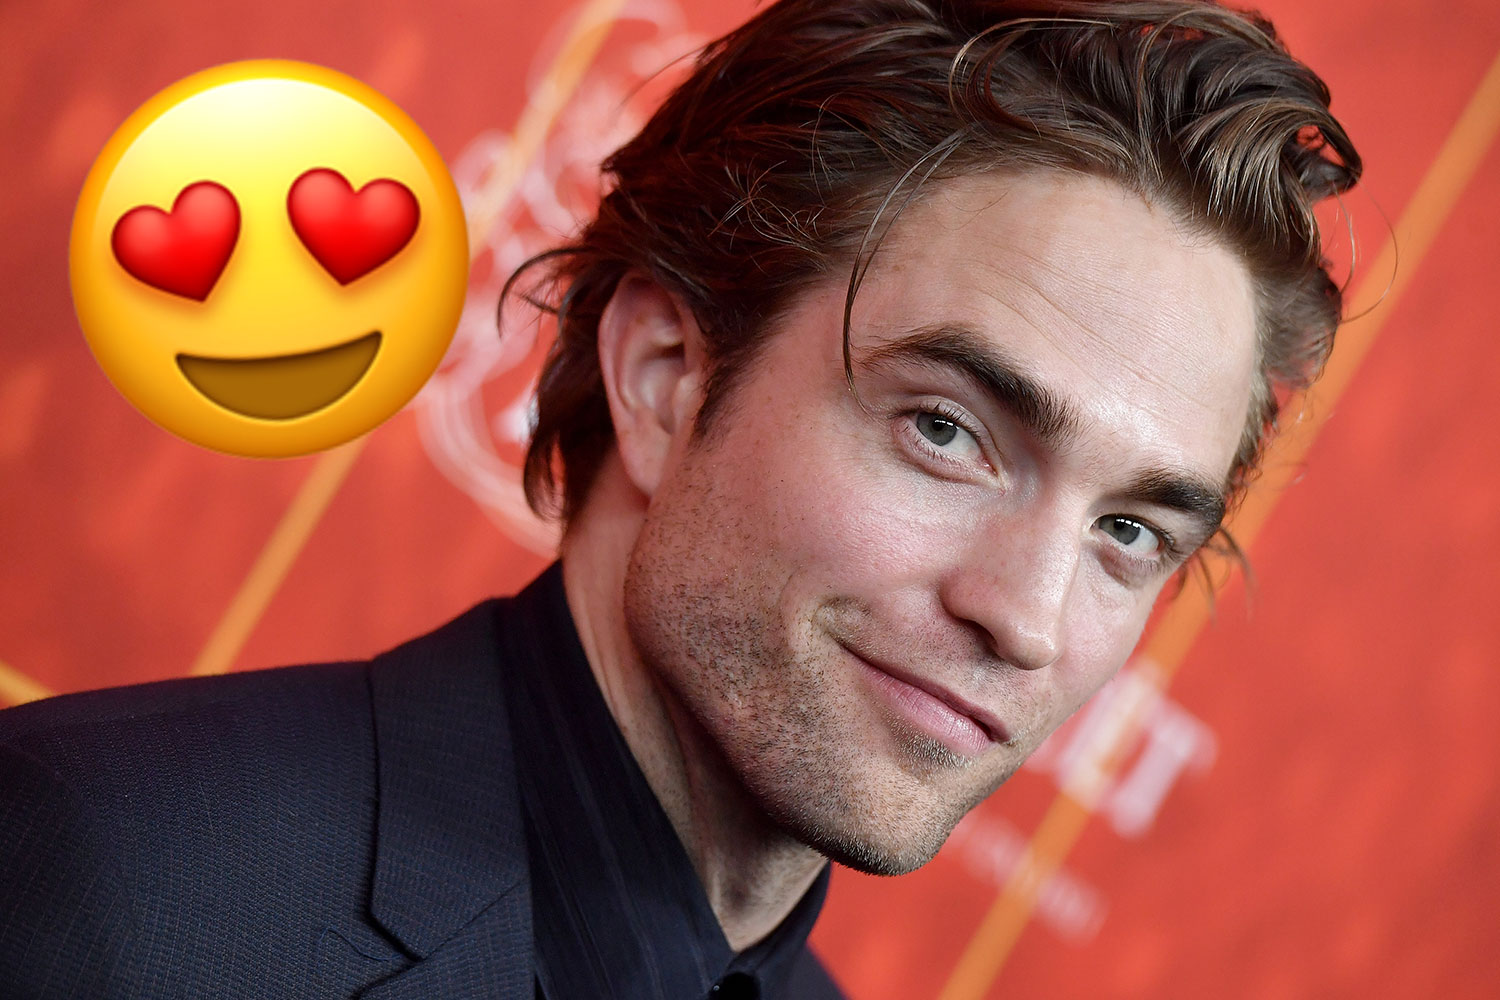 Robert Pattison named the most beautiful man in the world